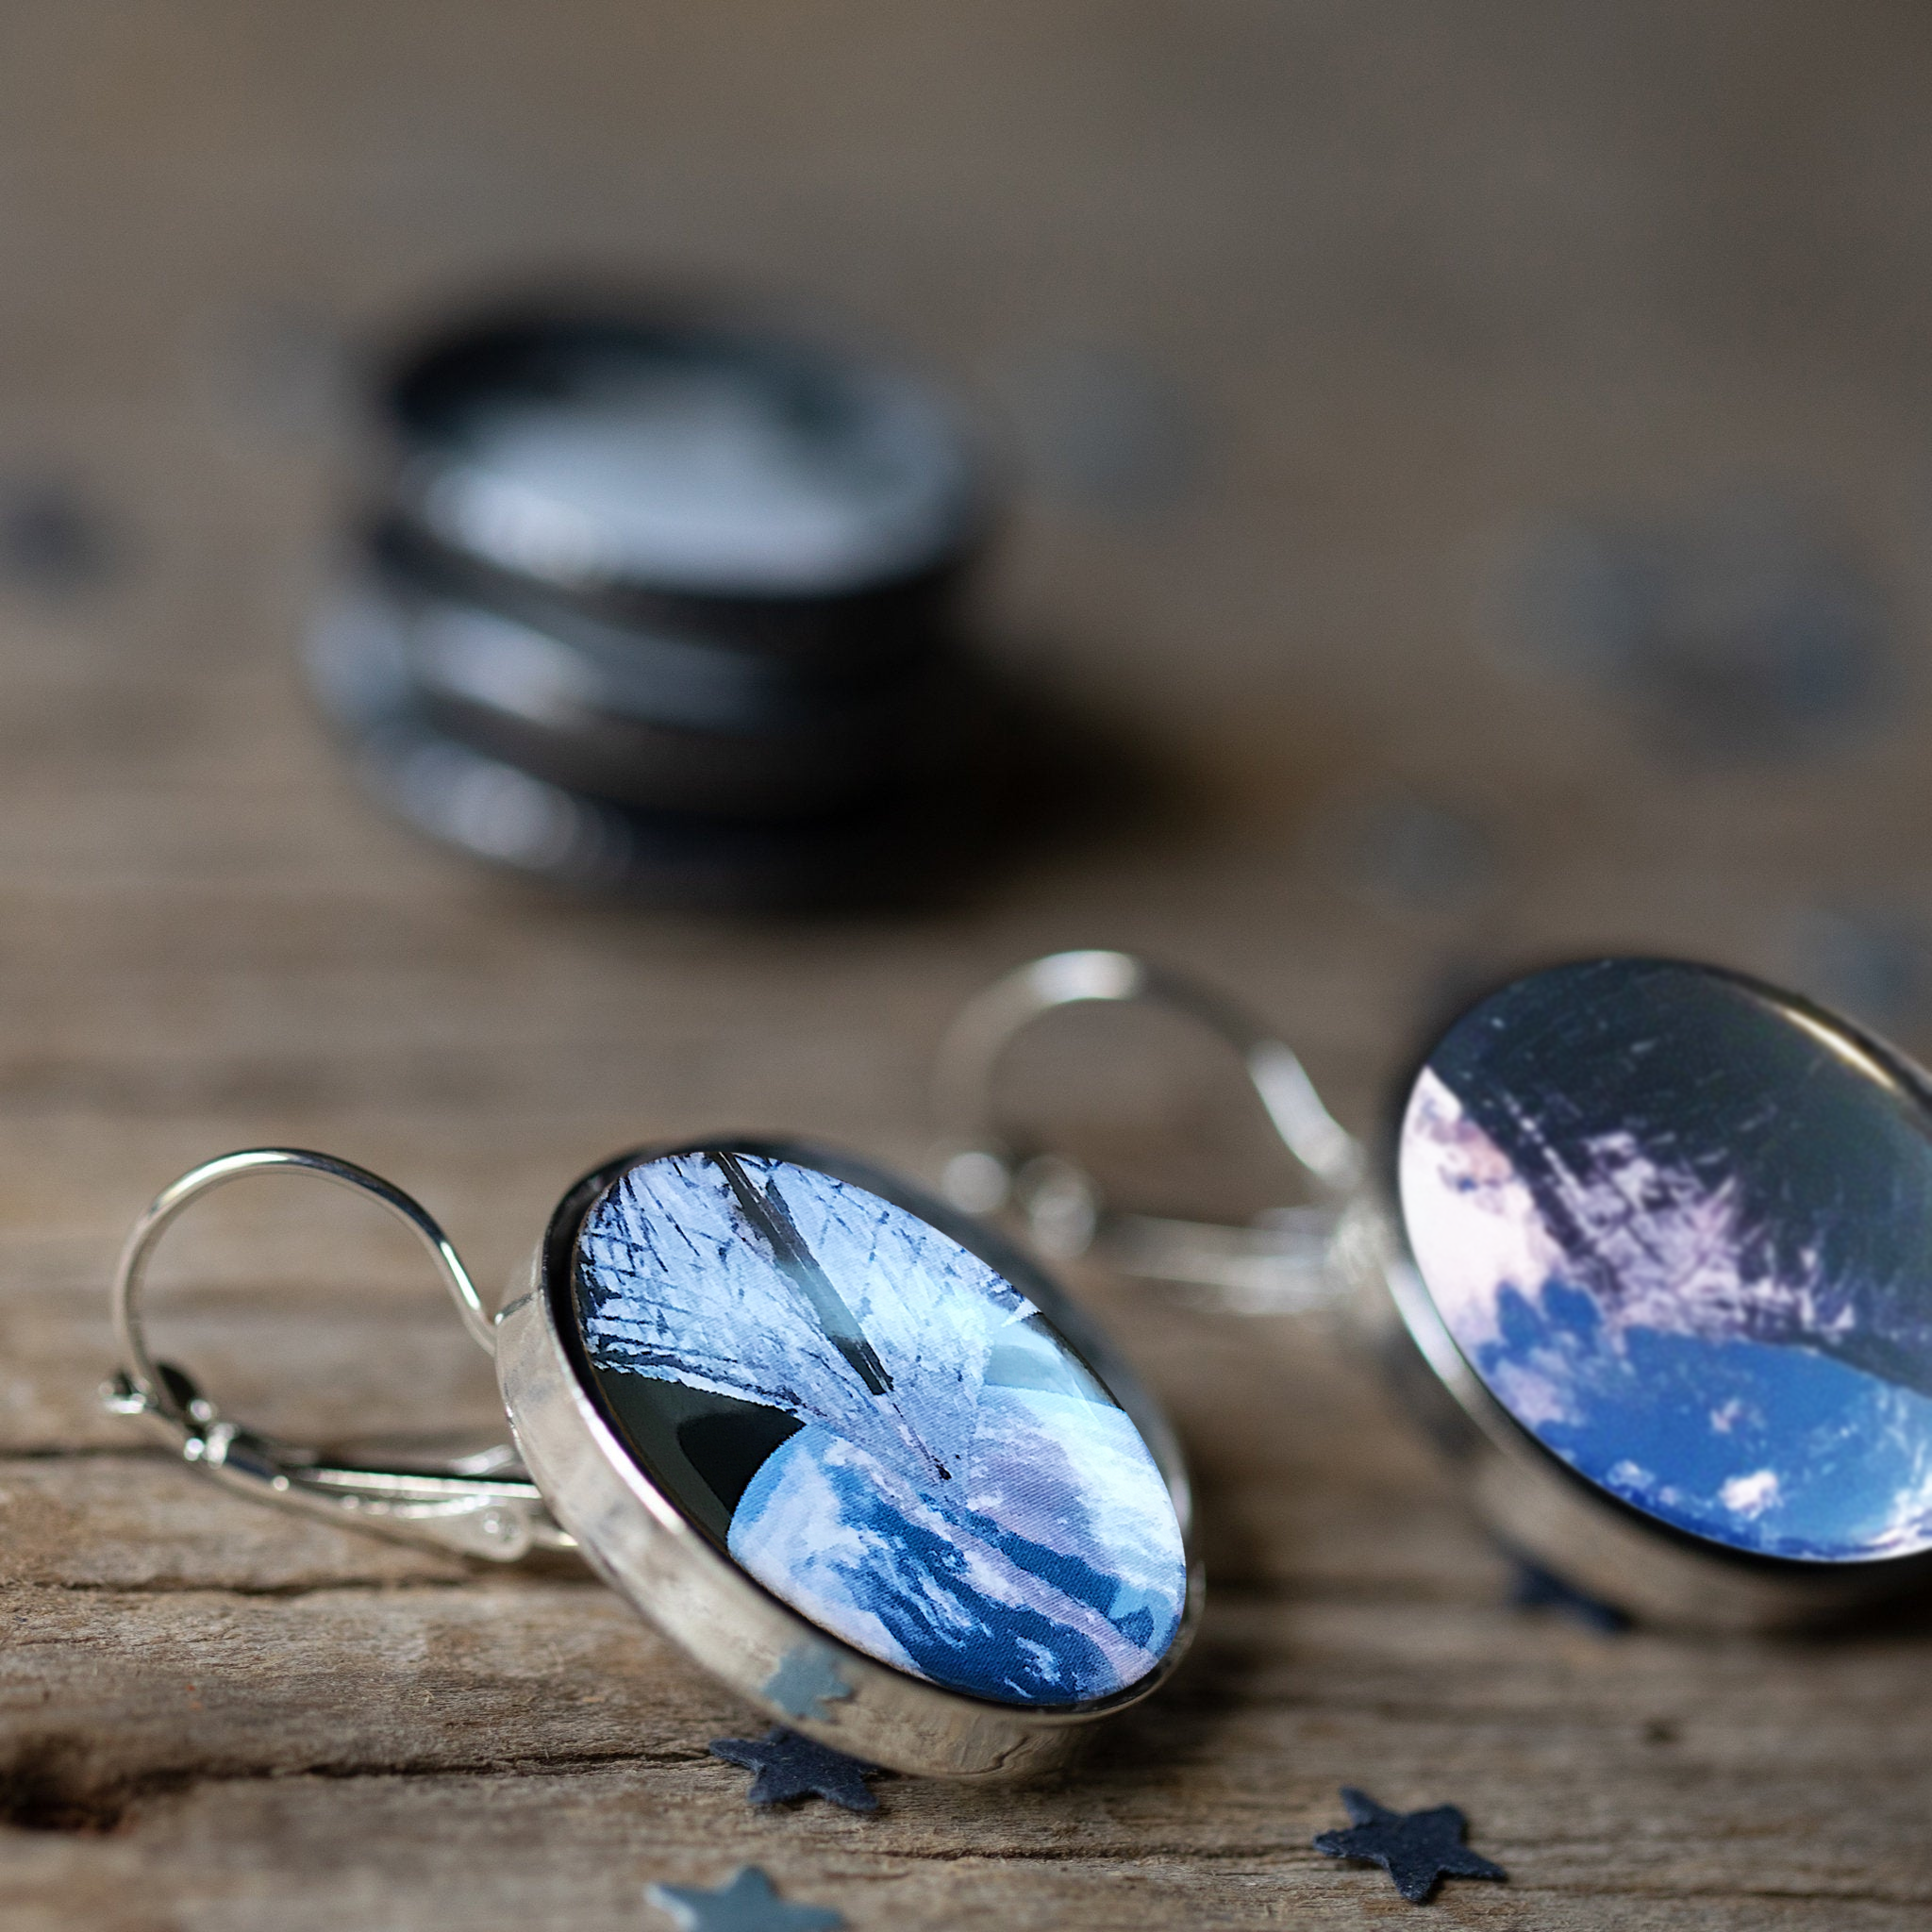 LightSail Earrings - The Planetary Jewelry by Yugen Tribe - Space Exploration, Outer Space, Earth, Galaxy Earrings